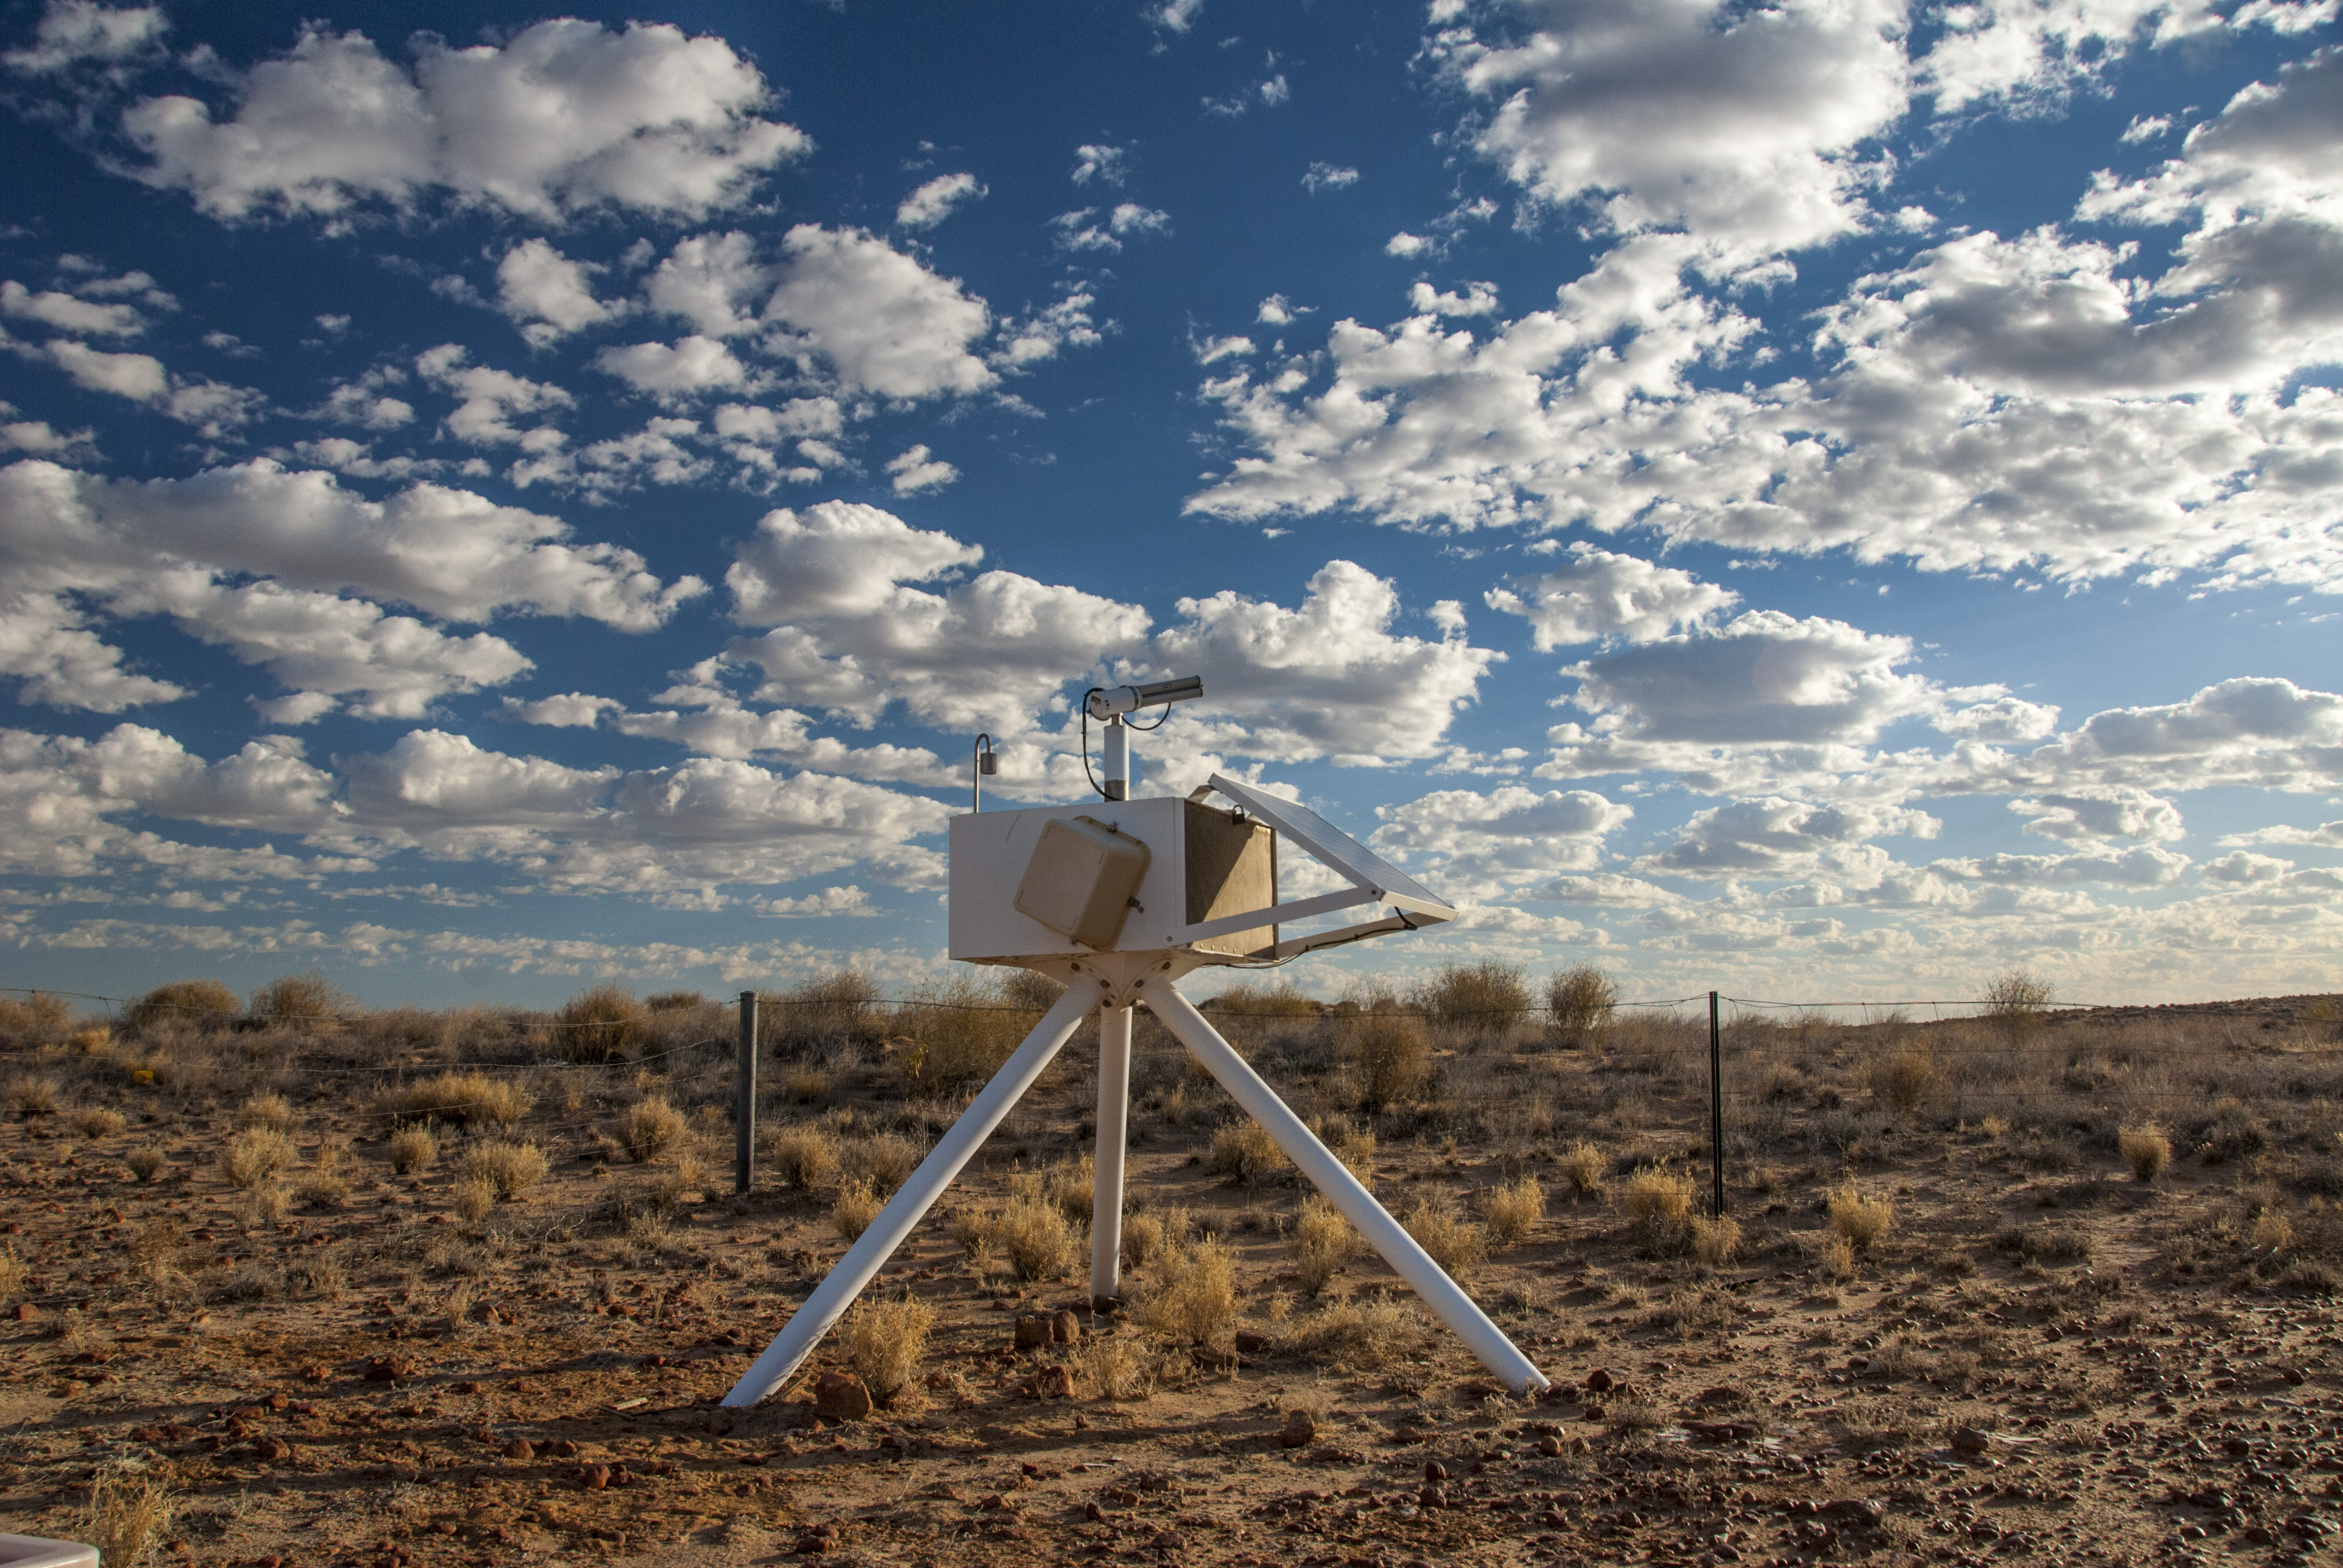 An aerospan instrument on scrubby plain beneath cumulus clouds